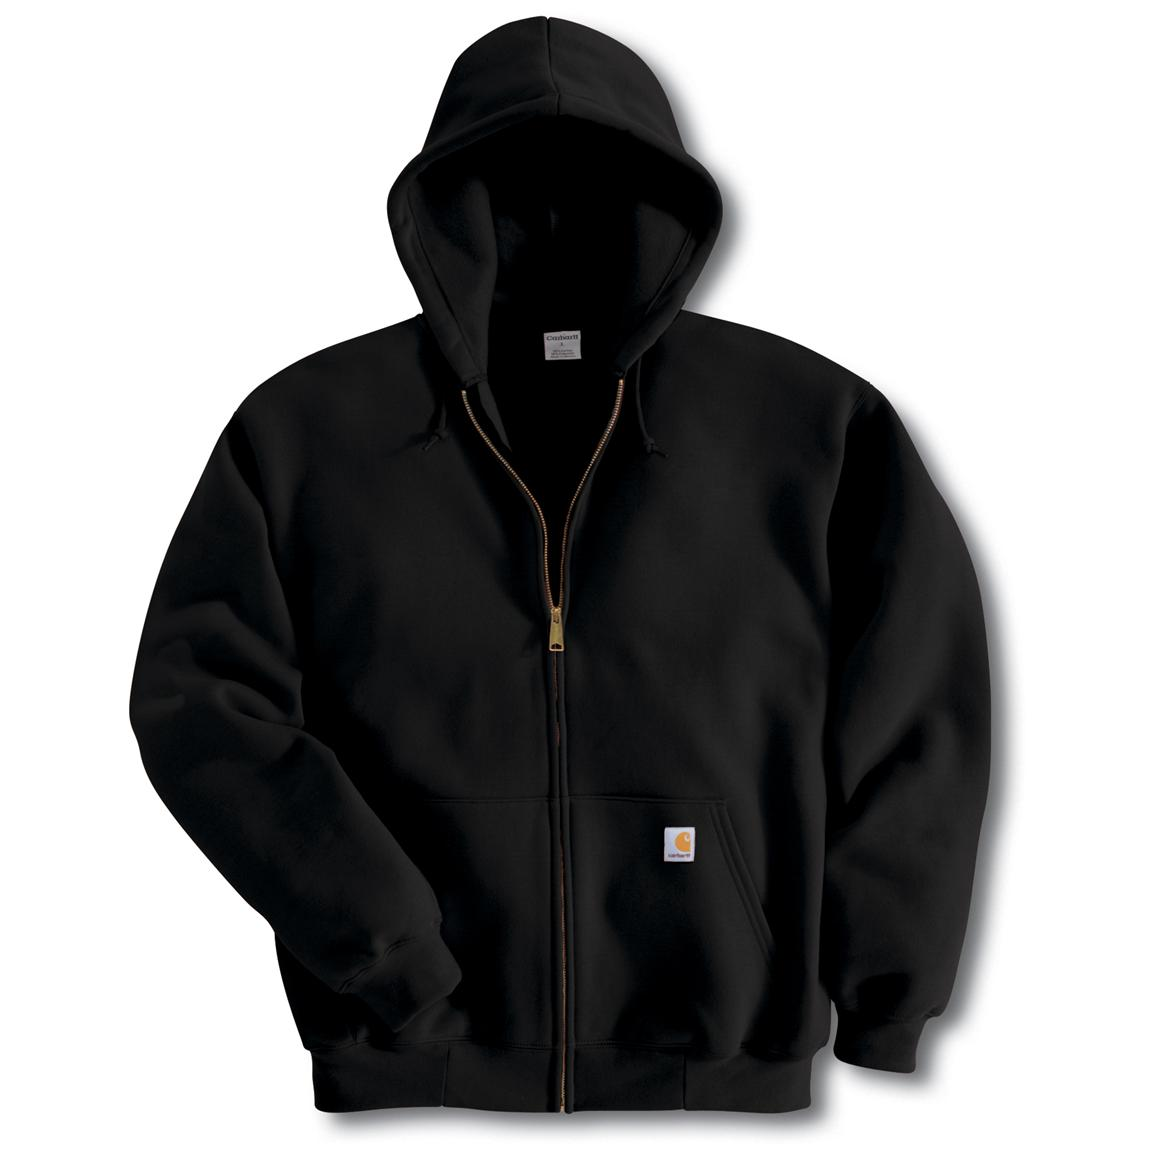 Carhartt Midweight Zip-Front Hooded Sweatshirt, Black (Slight Irregulars)